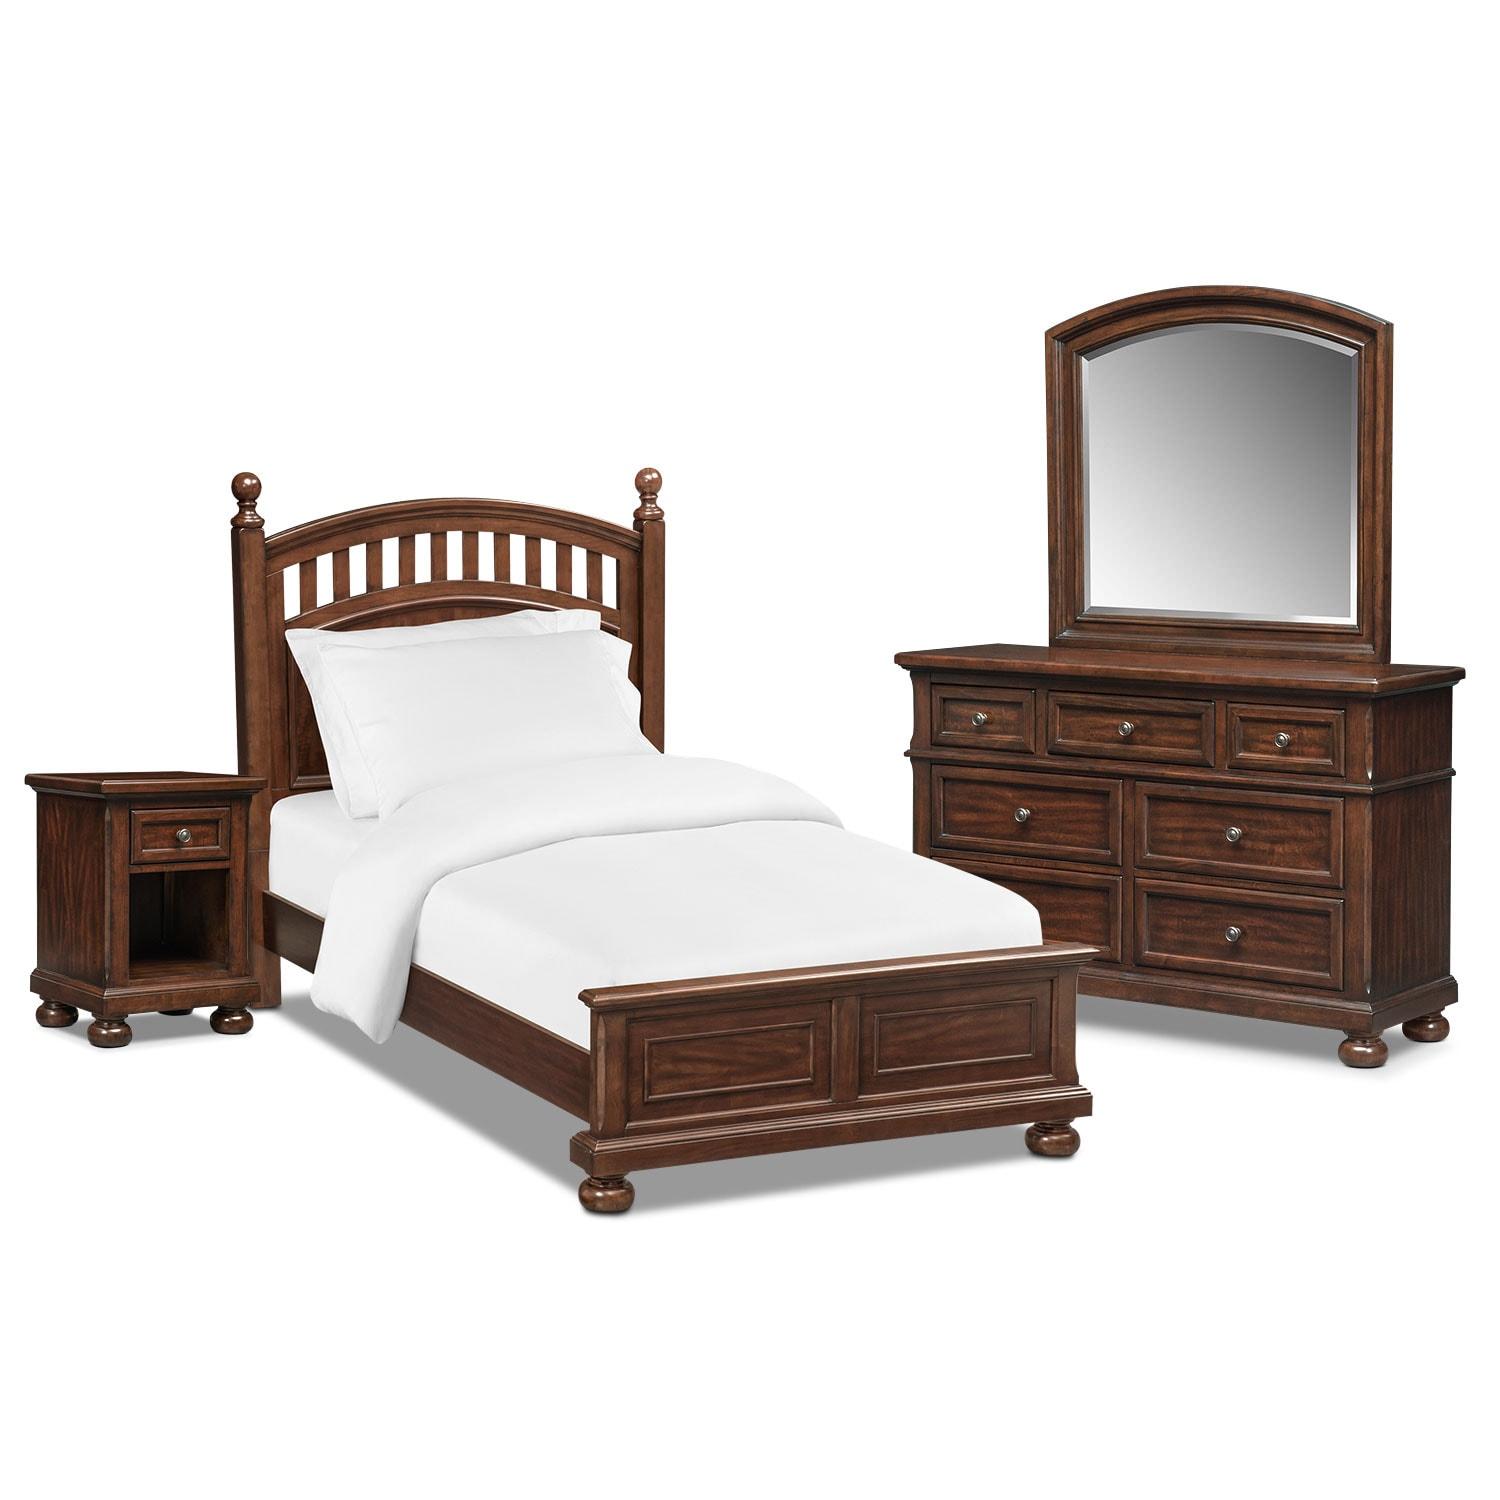 Hanover Youth 6-Piece Full Poster Bedroom Set - Cherry